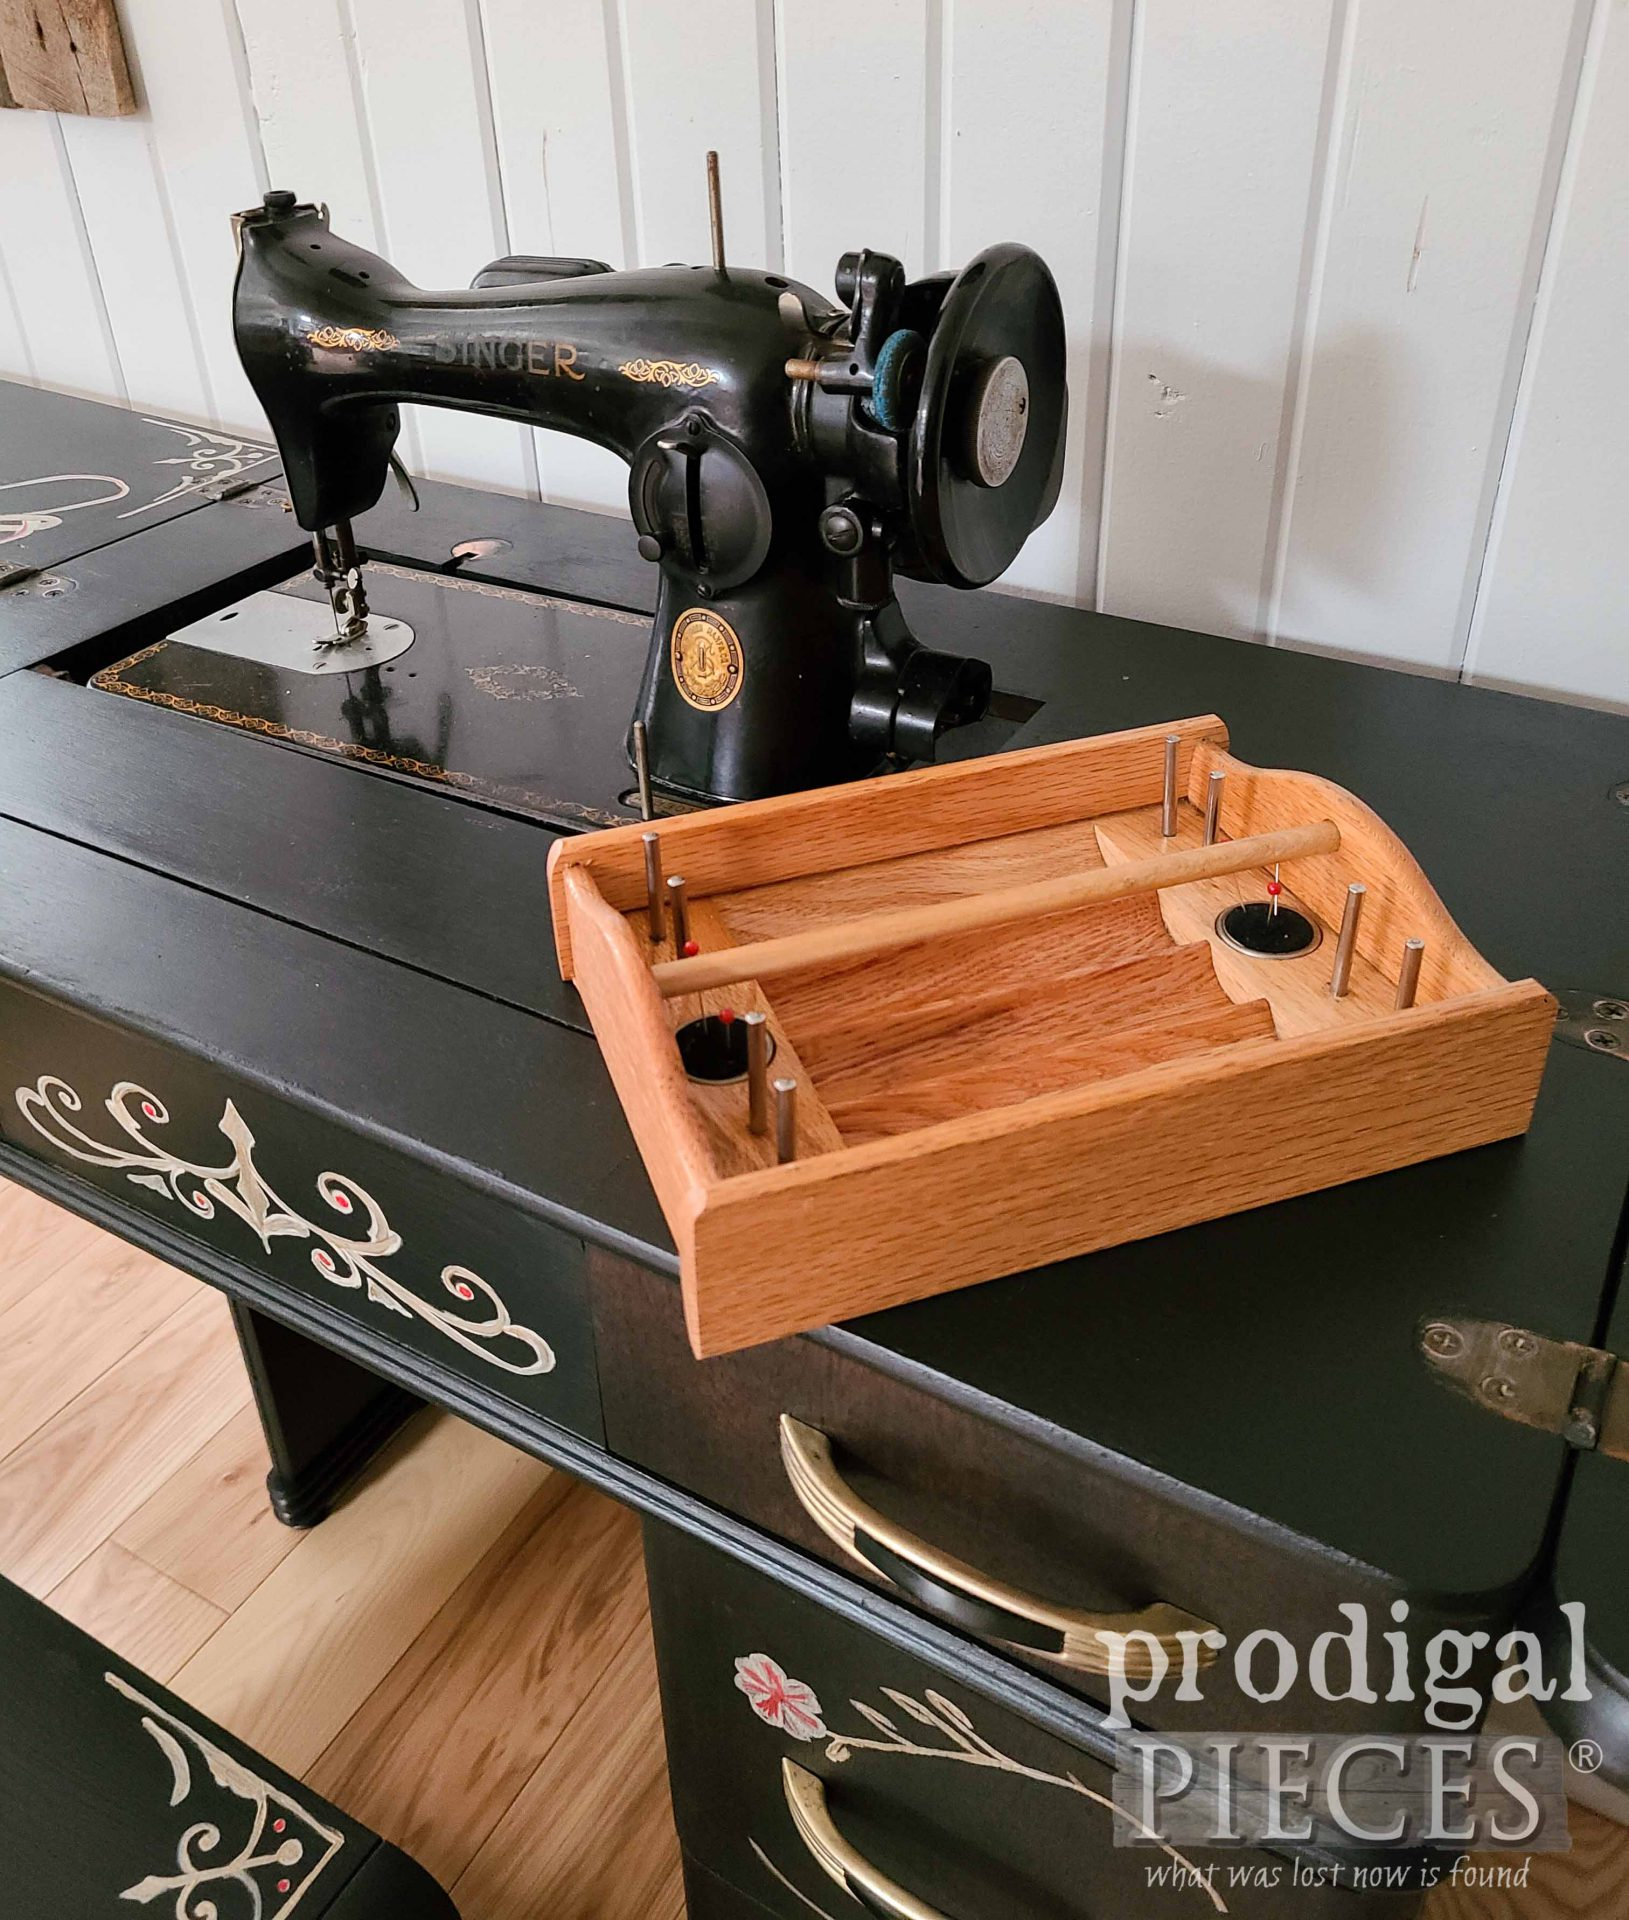 Antique Sewing Notion Tote in Art Deco Sewing Desk | prodigalpieces.com #prodigalpieces #sewing #antique #home